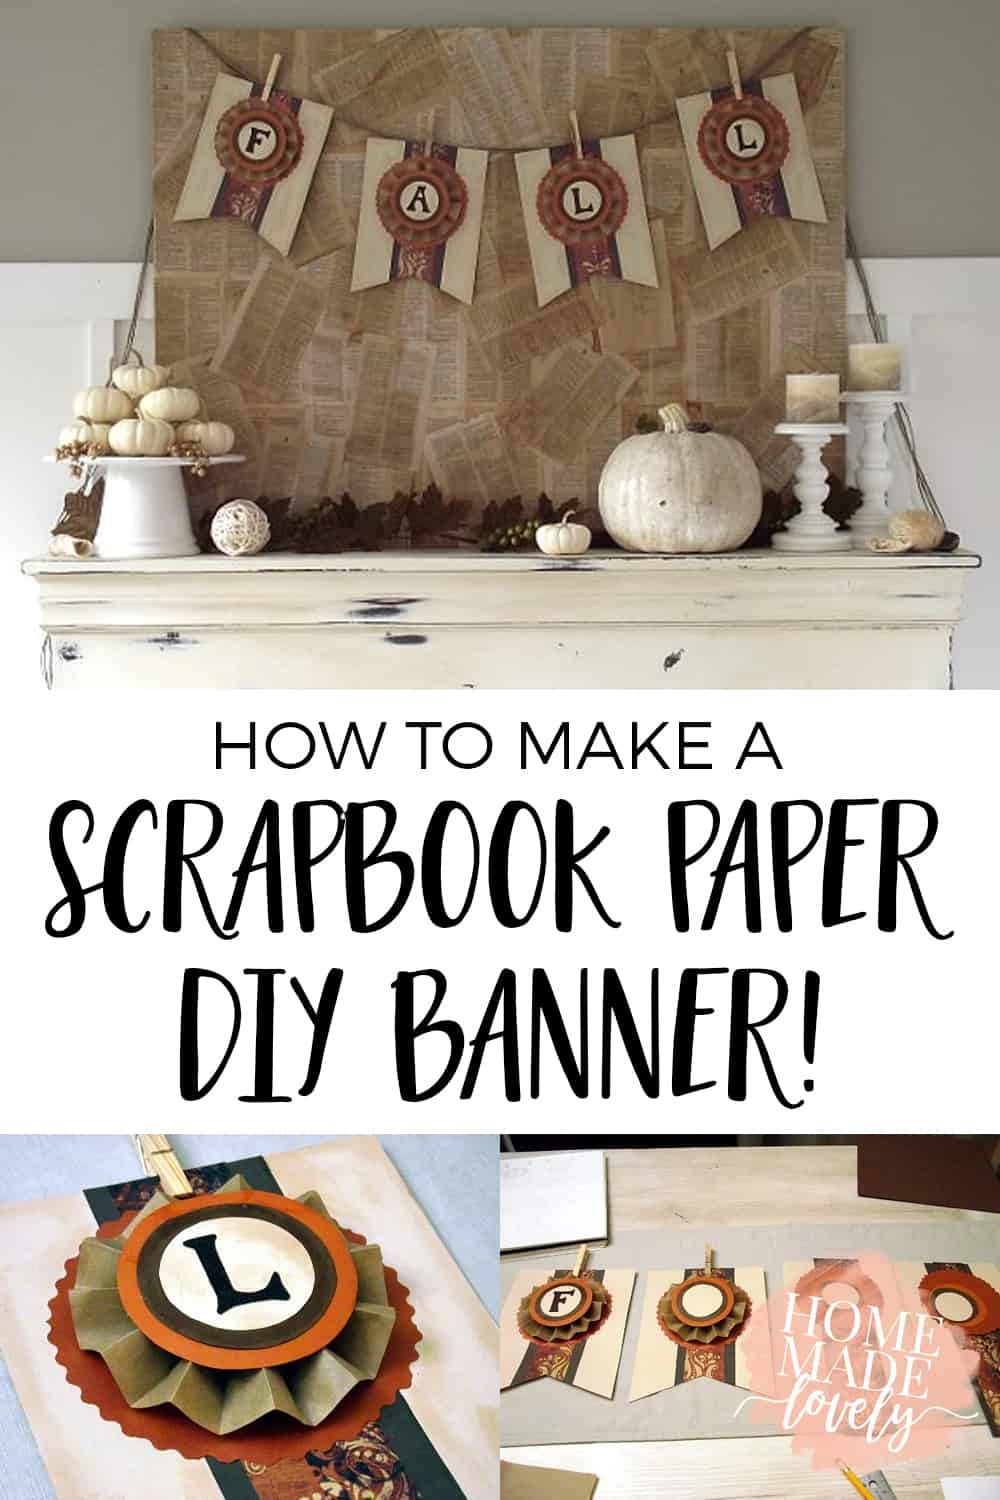 how to make a scrapbook paper diy banner